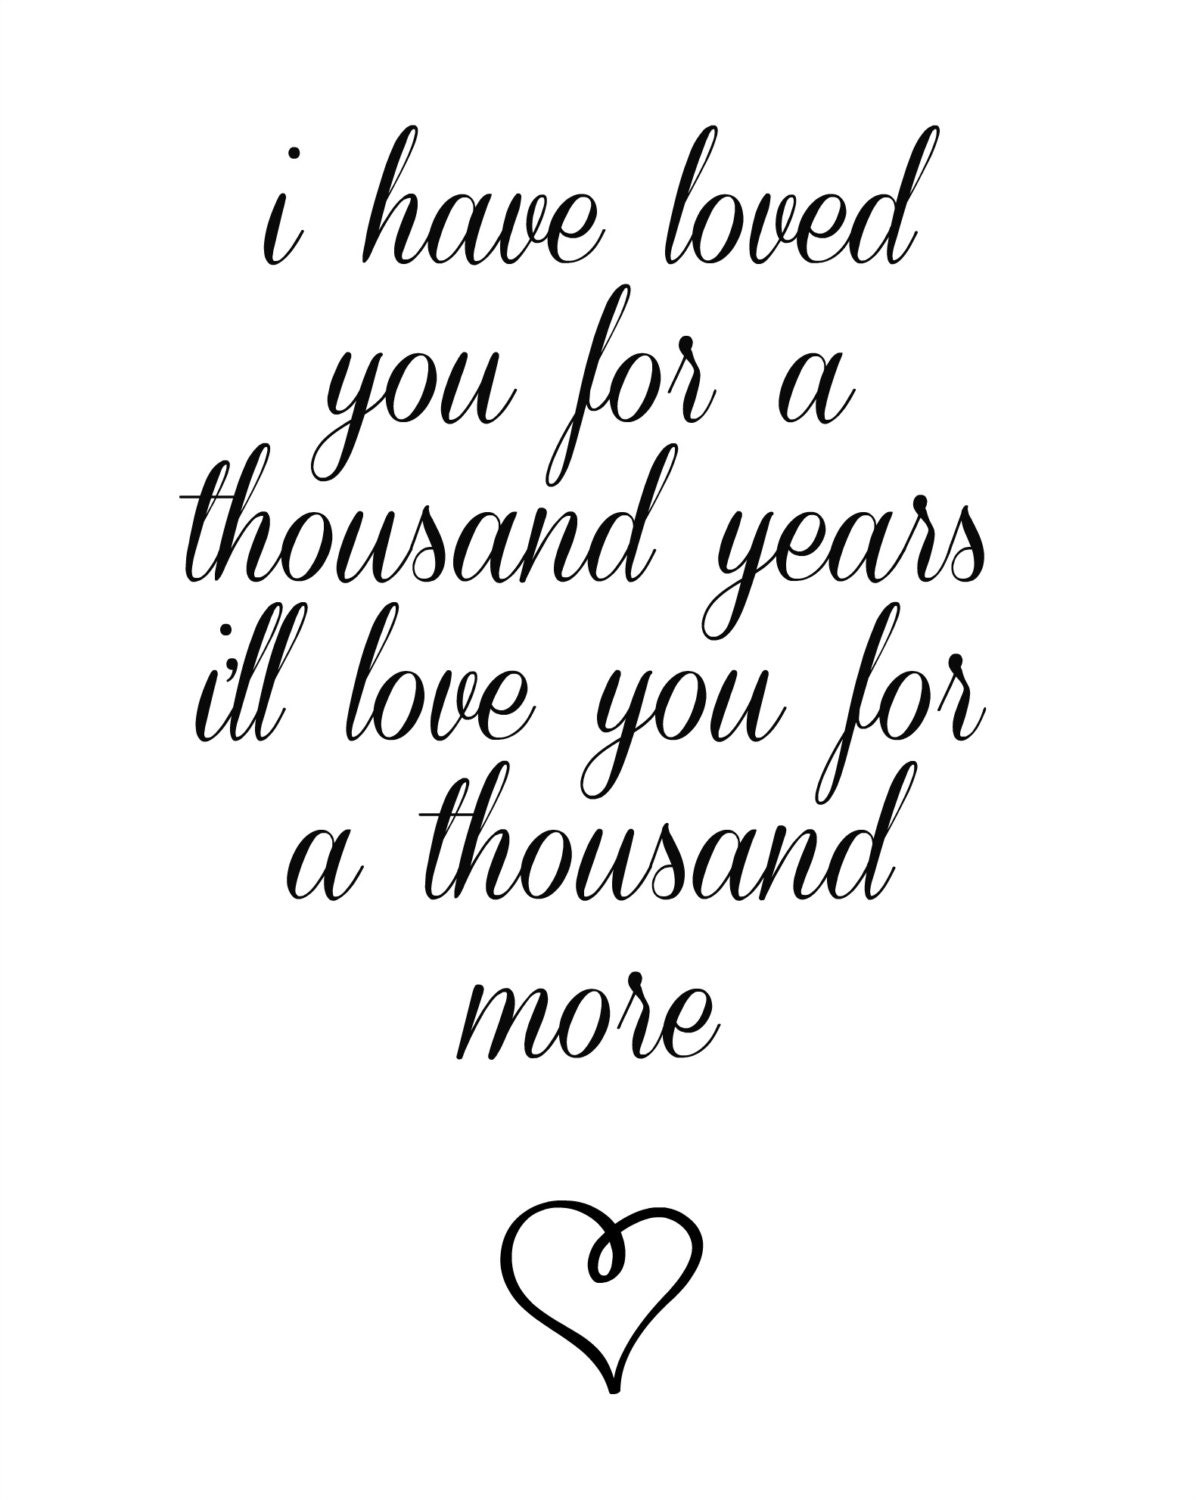 Lovely Music Quotes: A Thousand Years Lyrics Printable Wedding Song Wedding